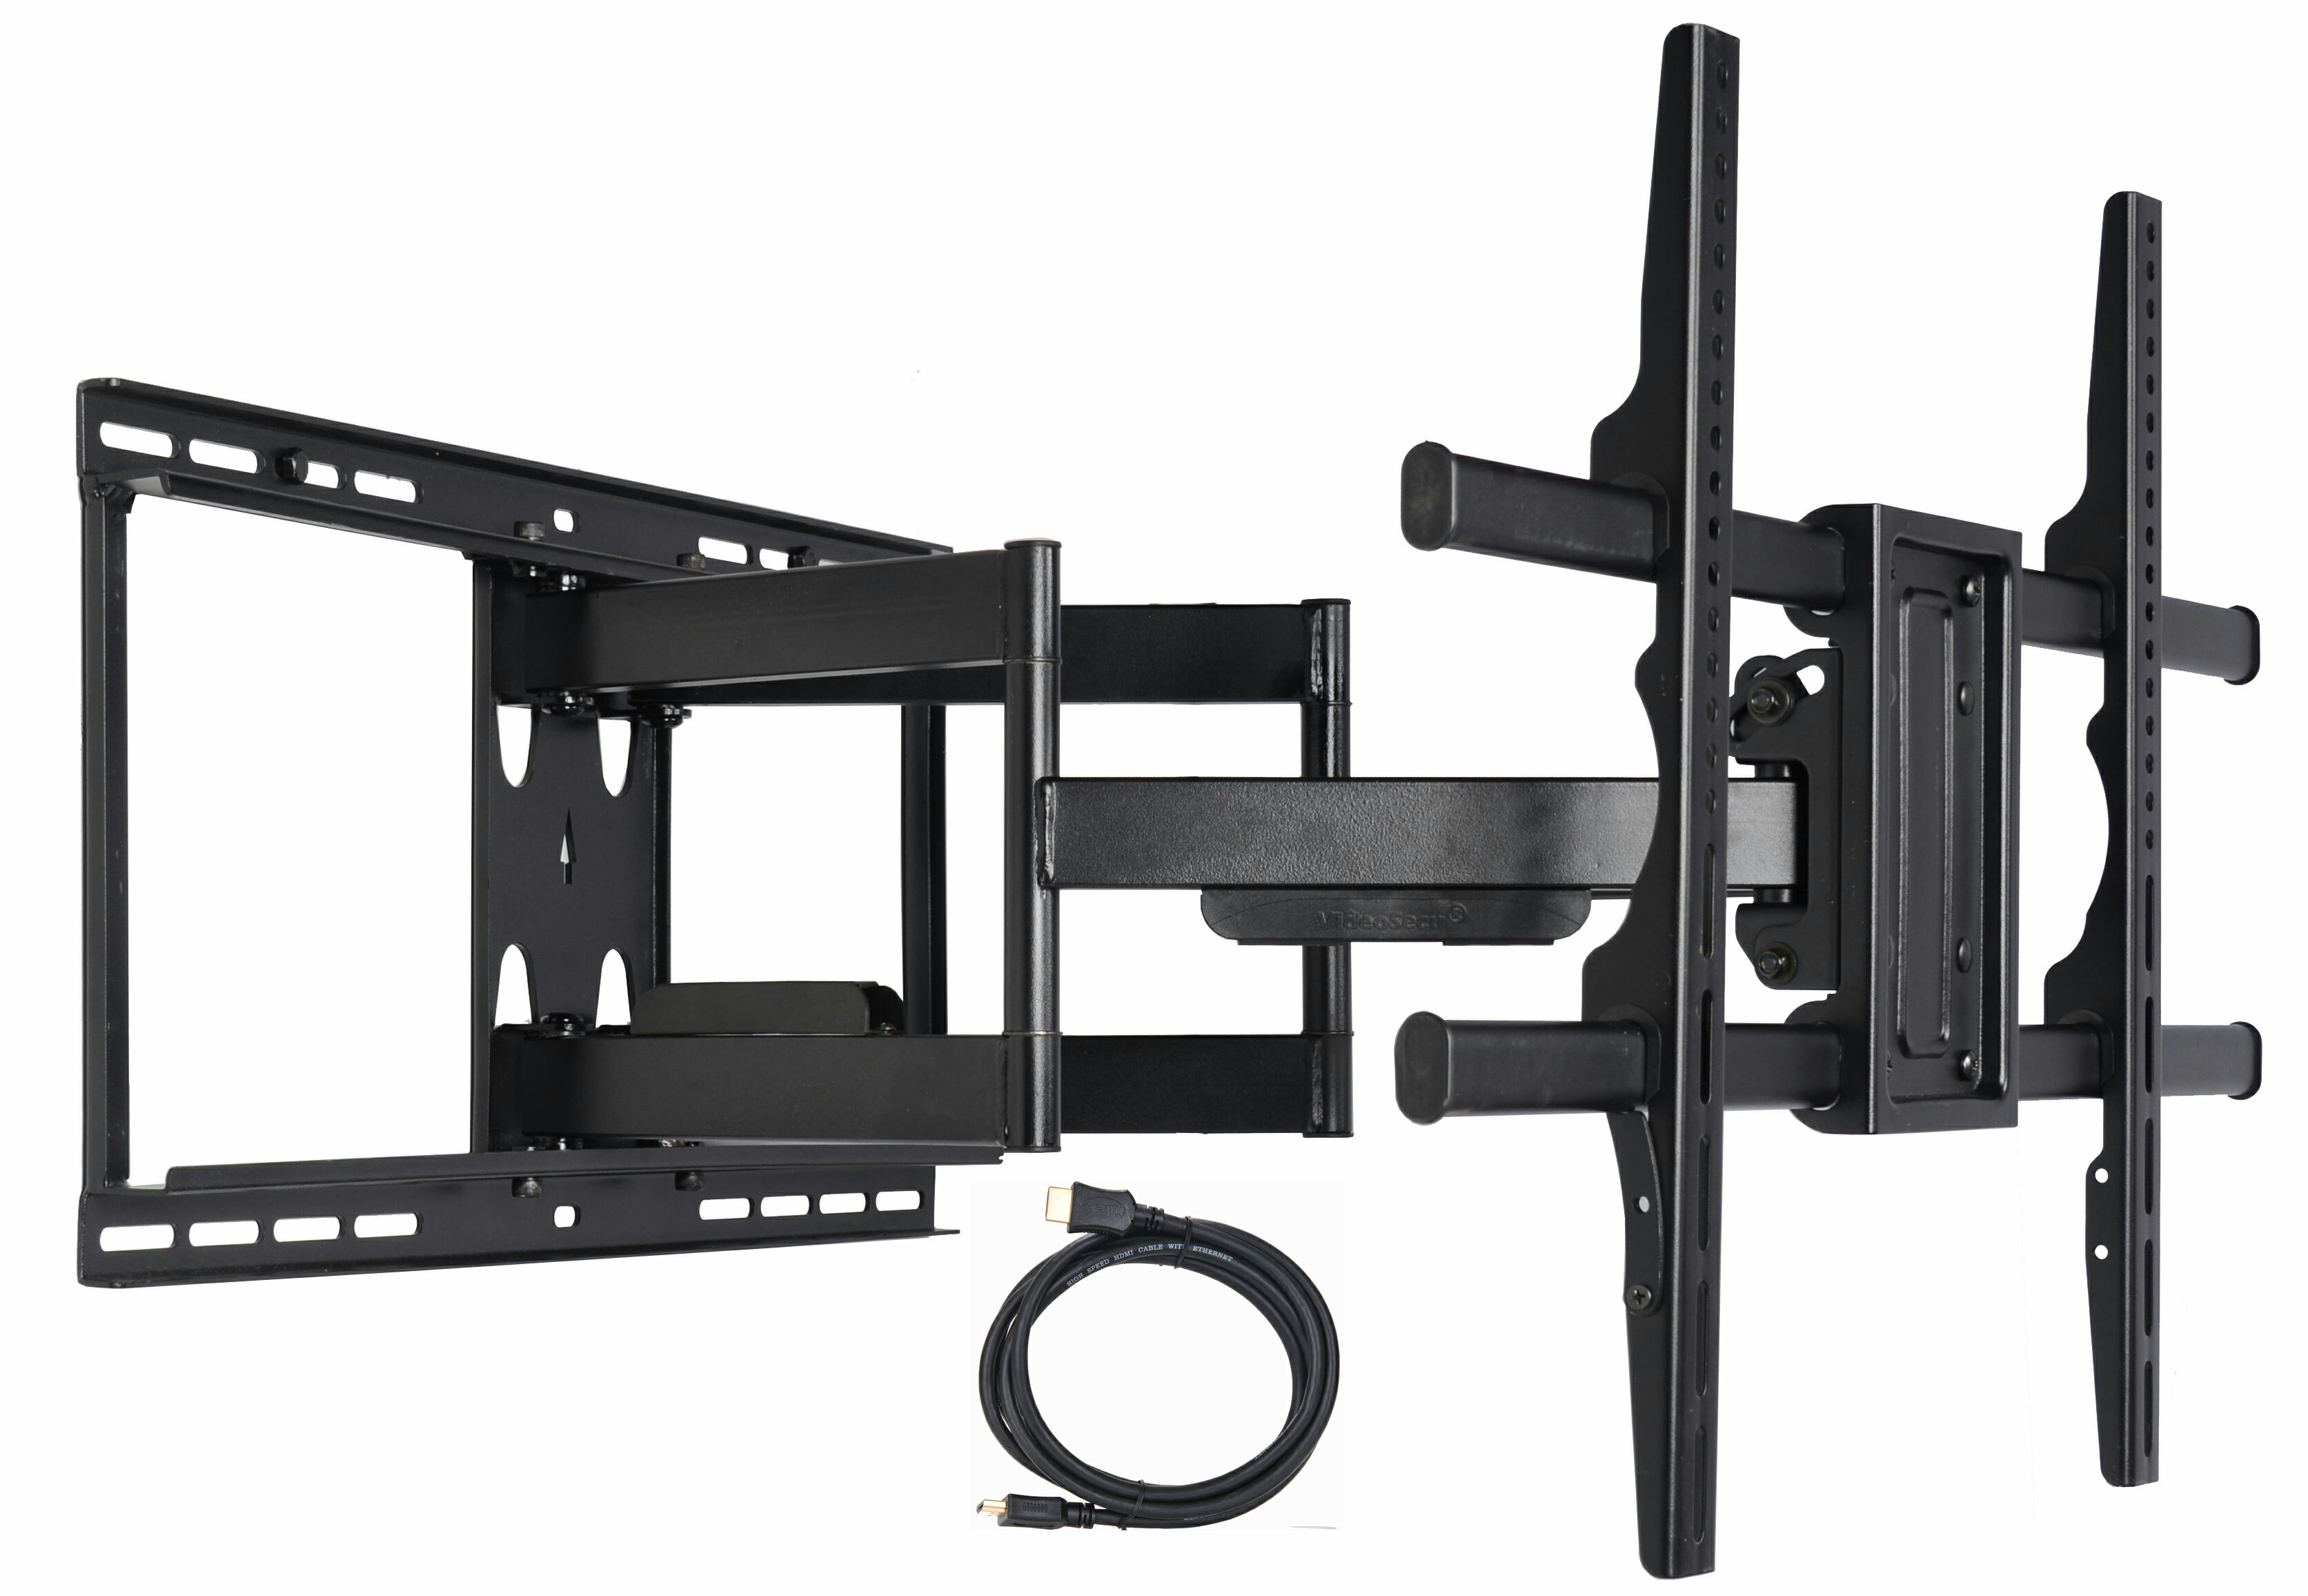 digiair videosecu articulating full motion tv wall mount for samsung 49 55 58 60 65 70 75 82. Black Bedroom Furniture Sets. Home Design Ideas